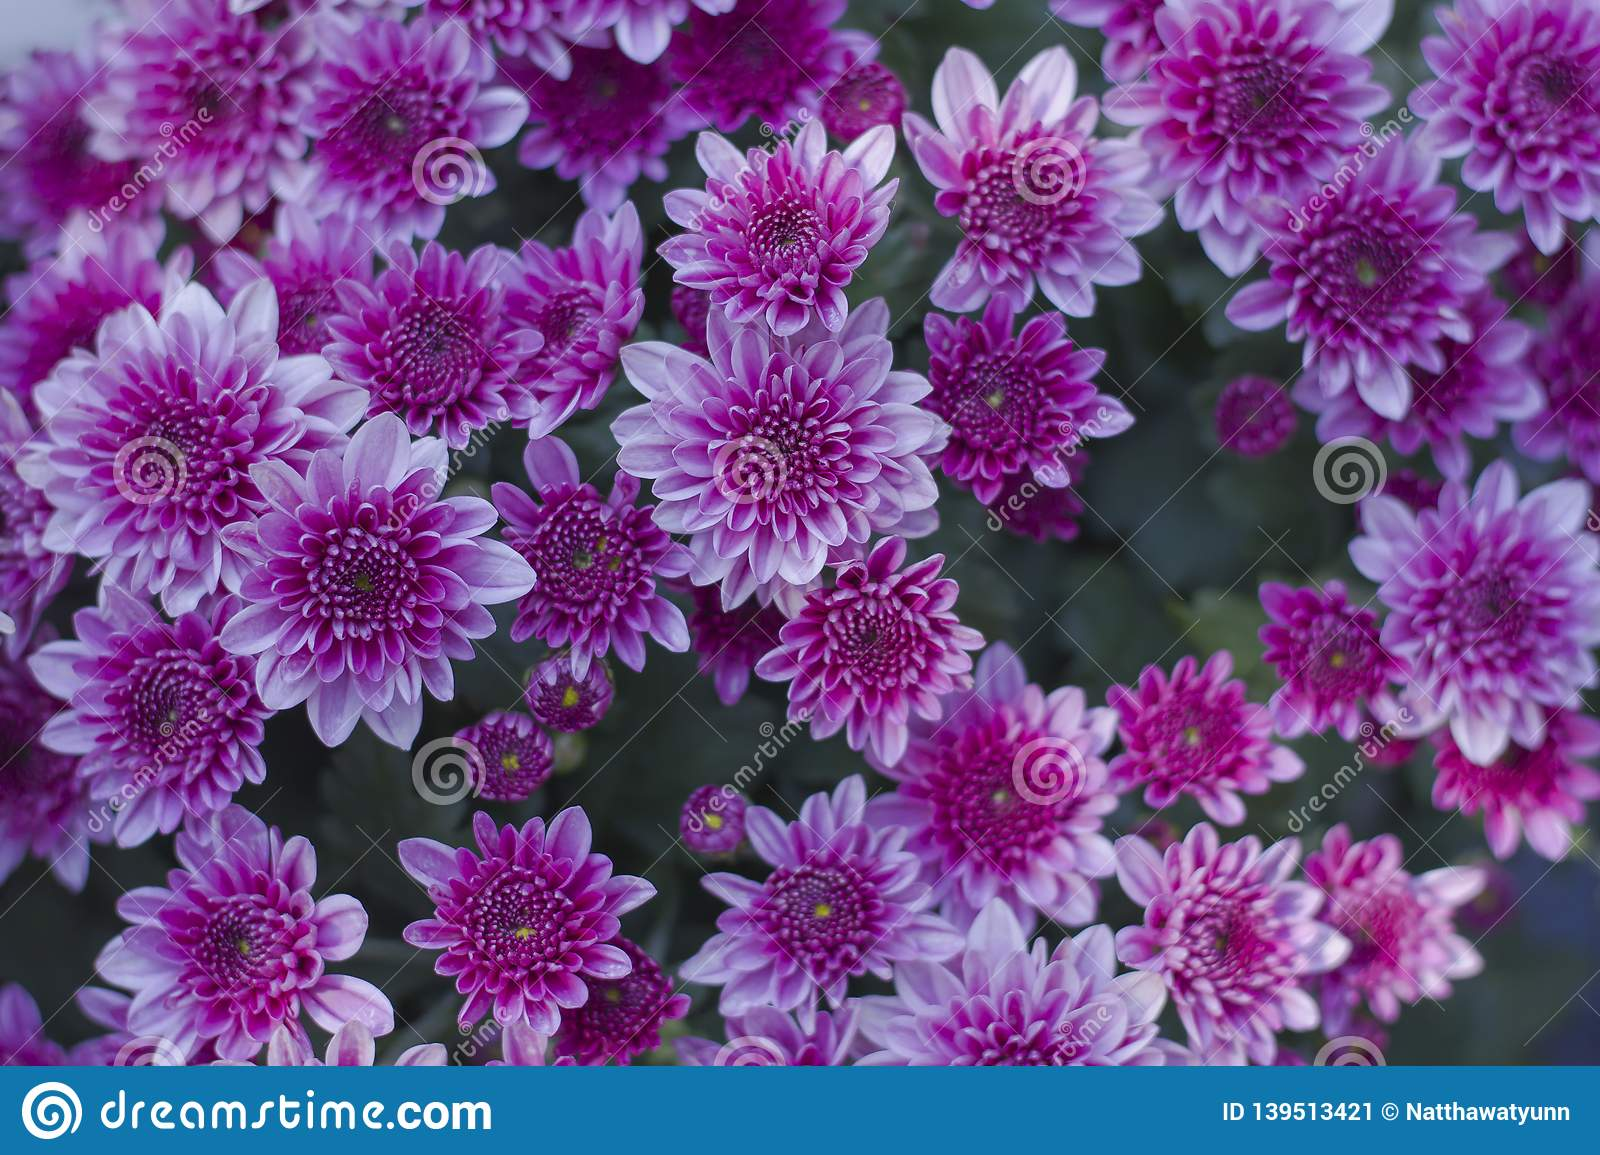 Chrysanthemum has beautiful pink and white fins. Flowers decorated with home and garden